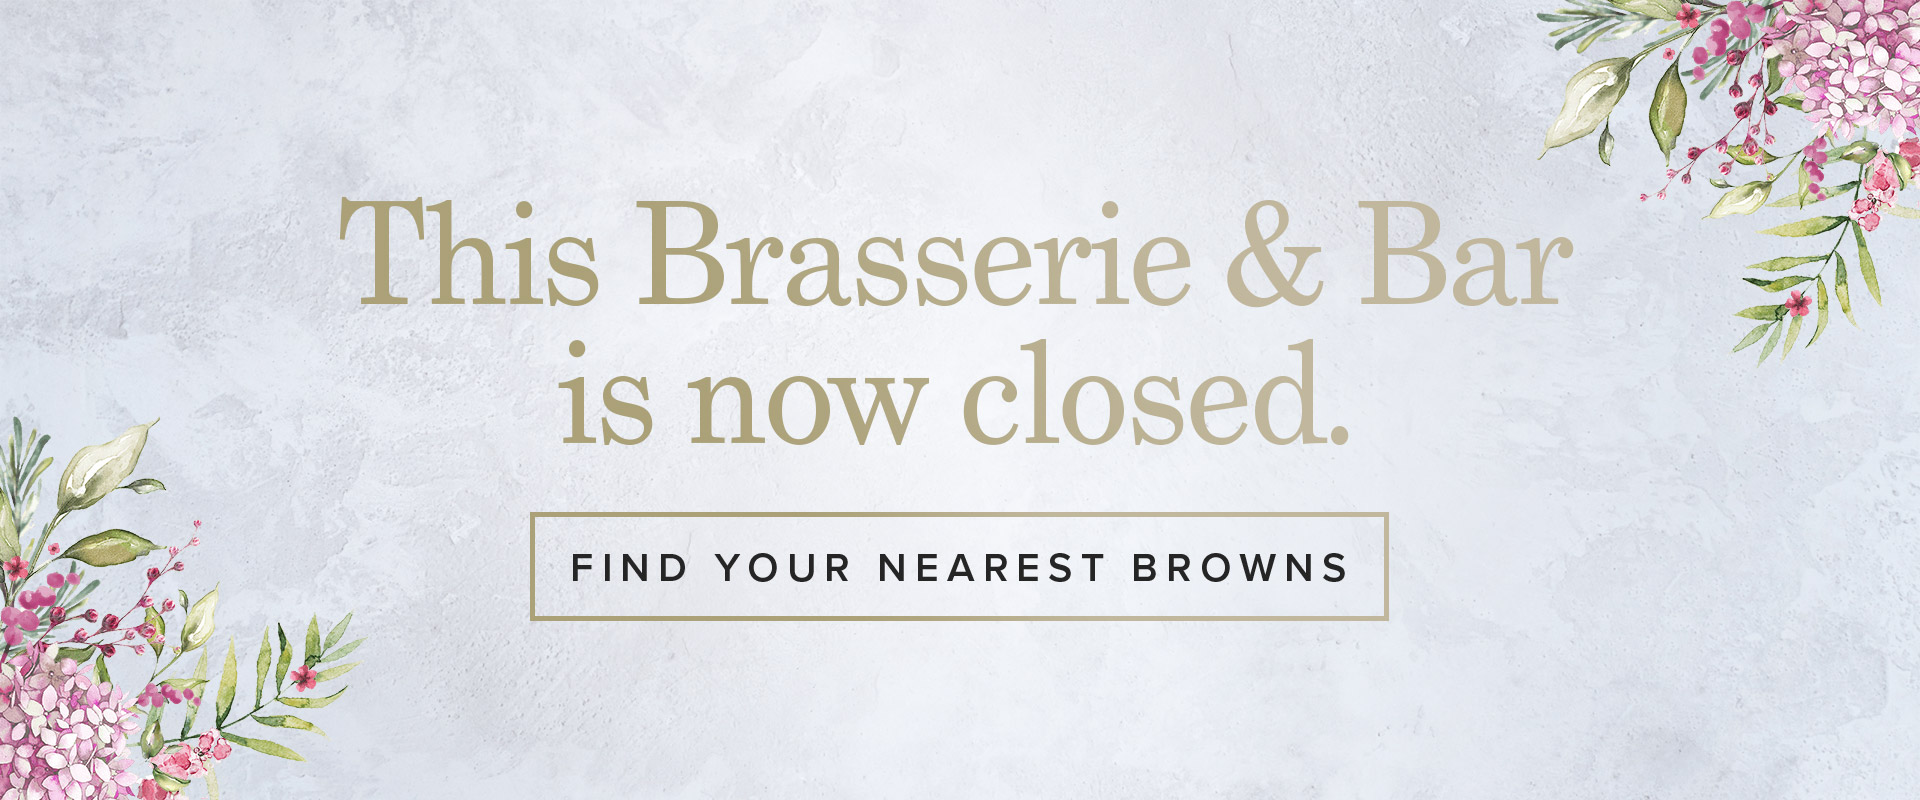 Browns-Closed-Web-Banner.jpg